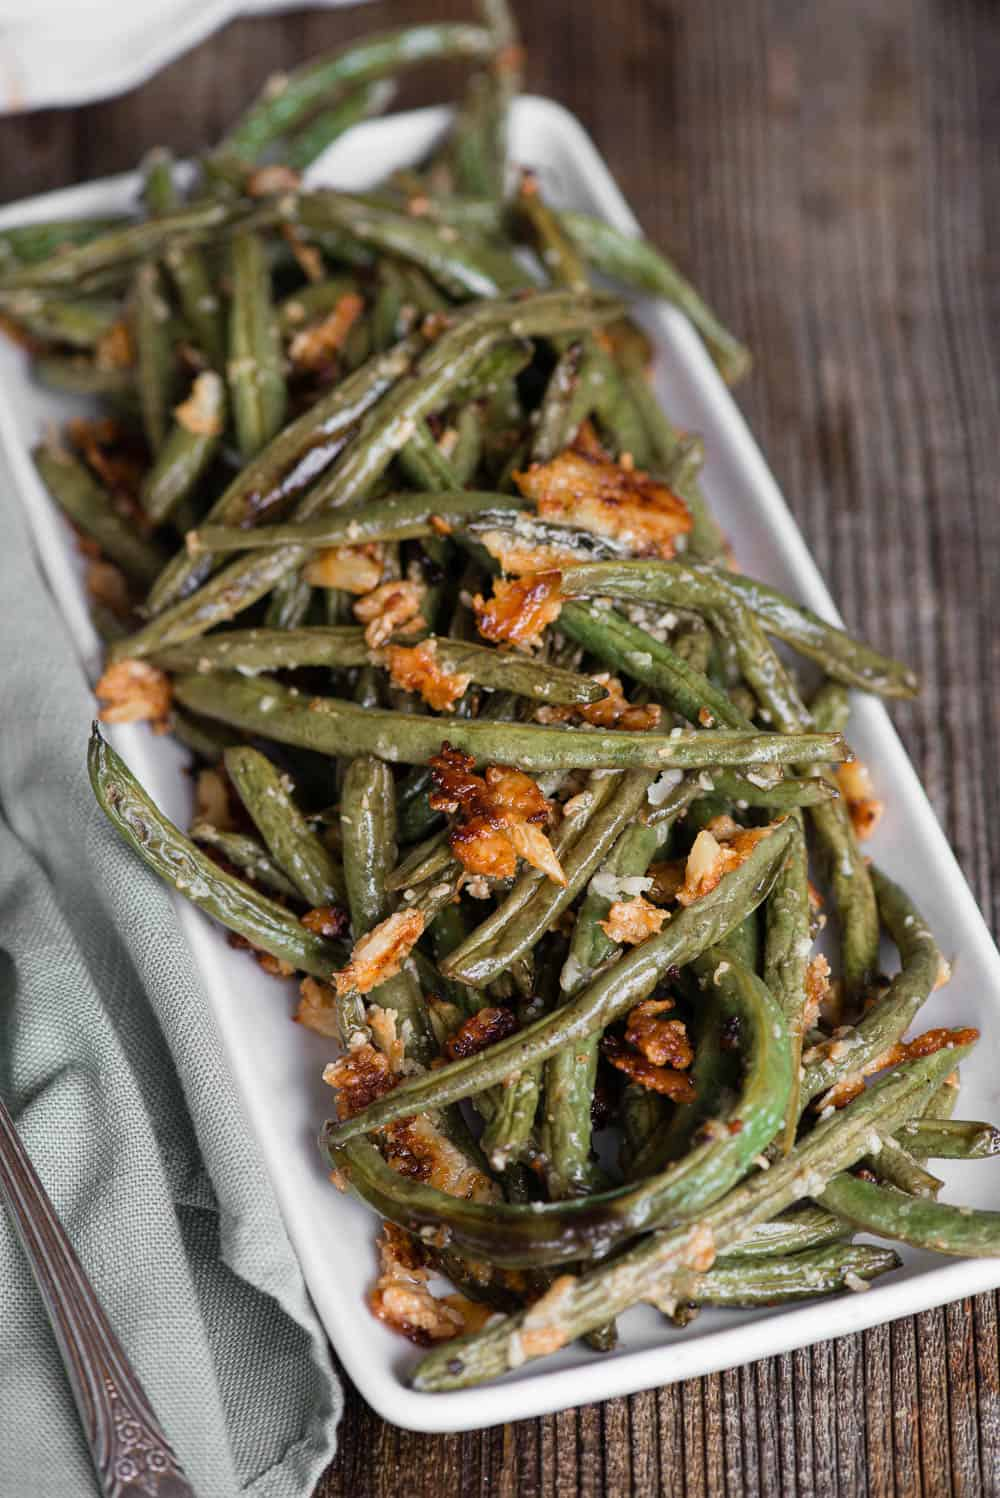 oven Roasted Green Beans on white plate